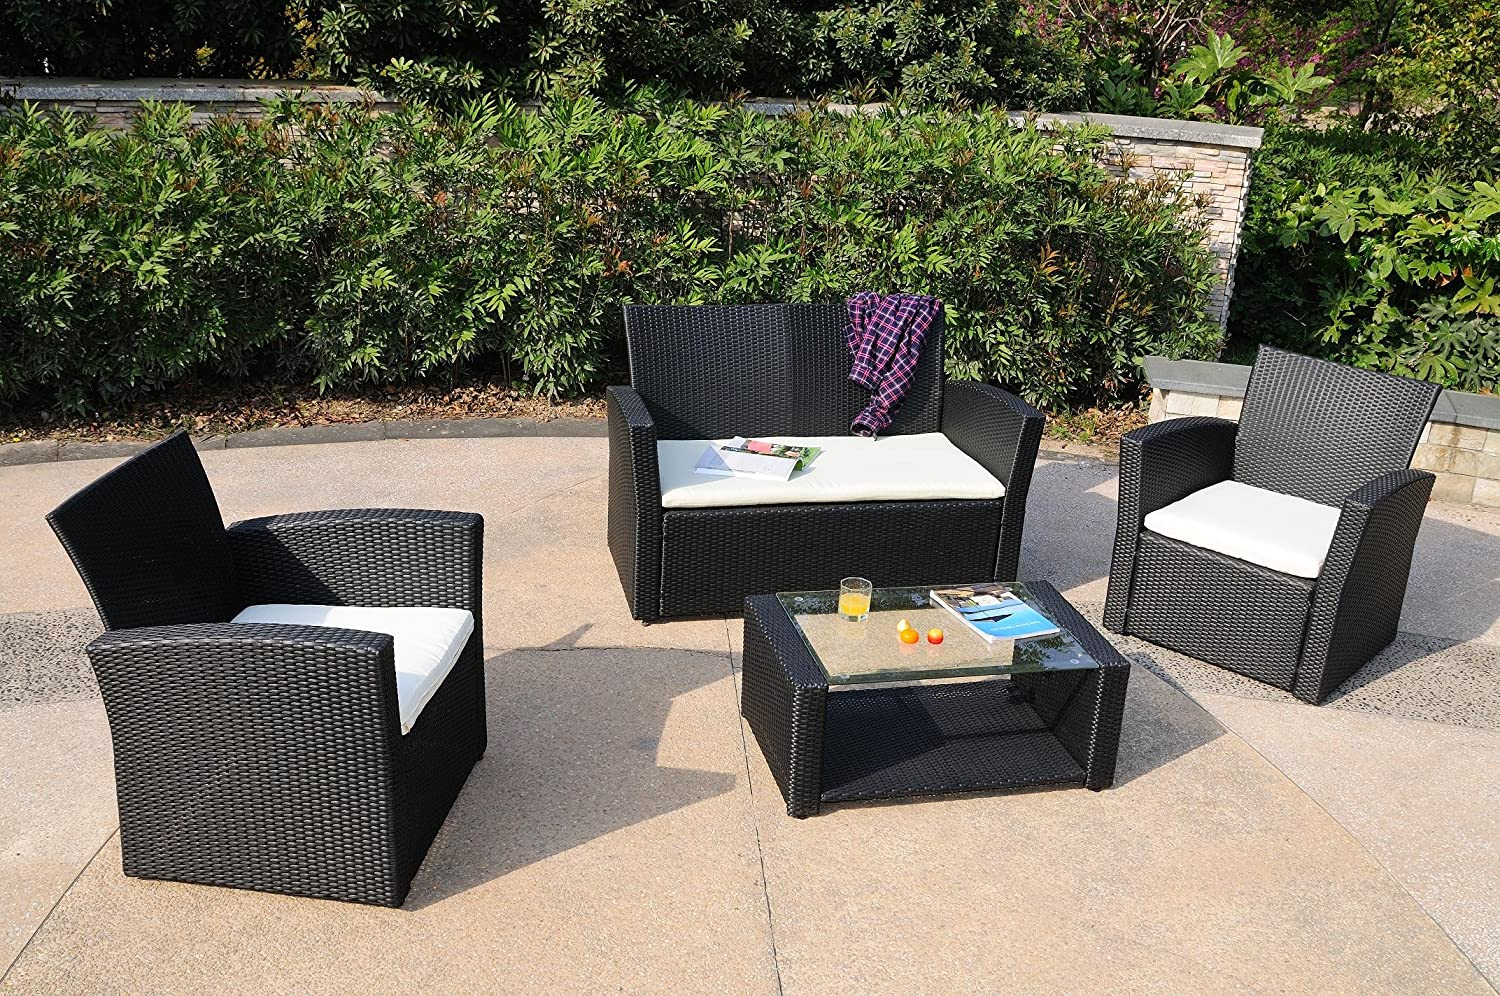 Patio furniture sets clearance patio design ideas for Lawn patio furniture